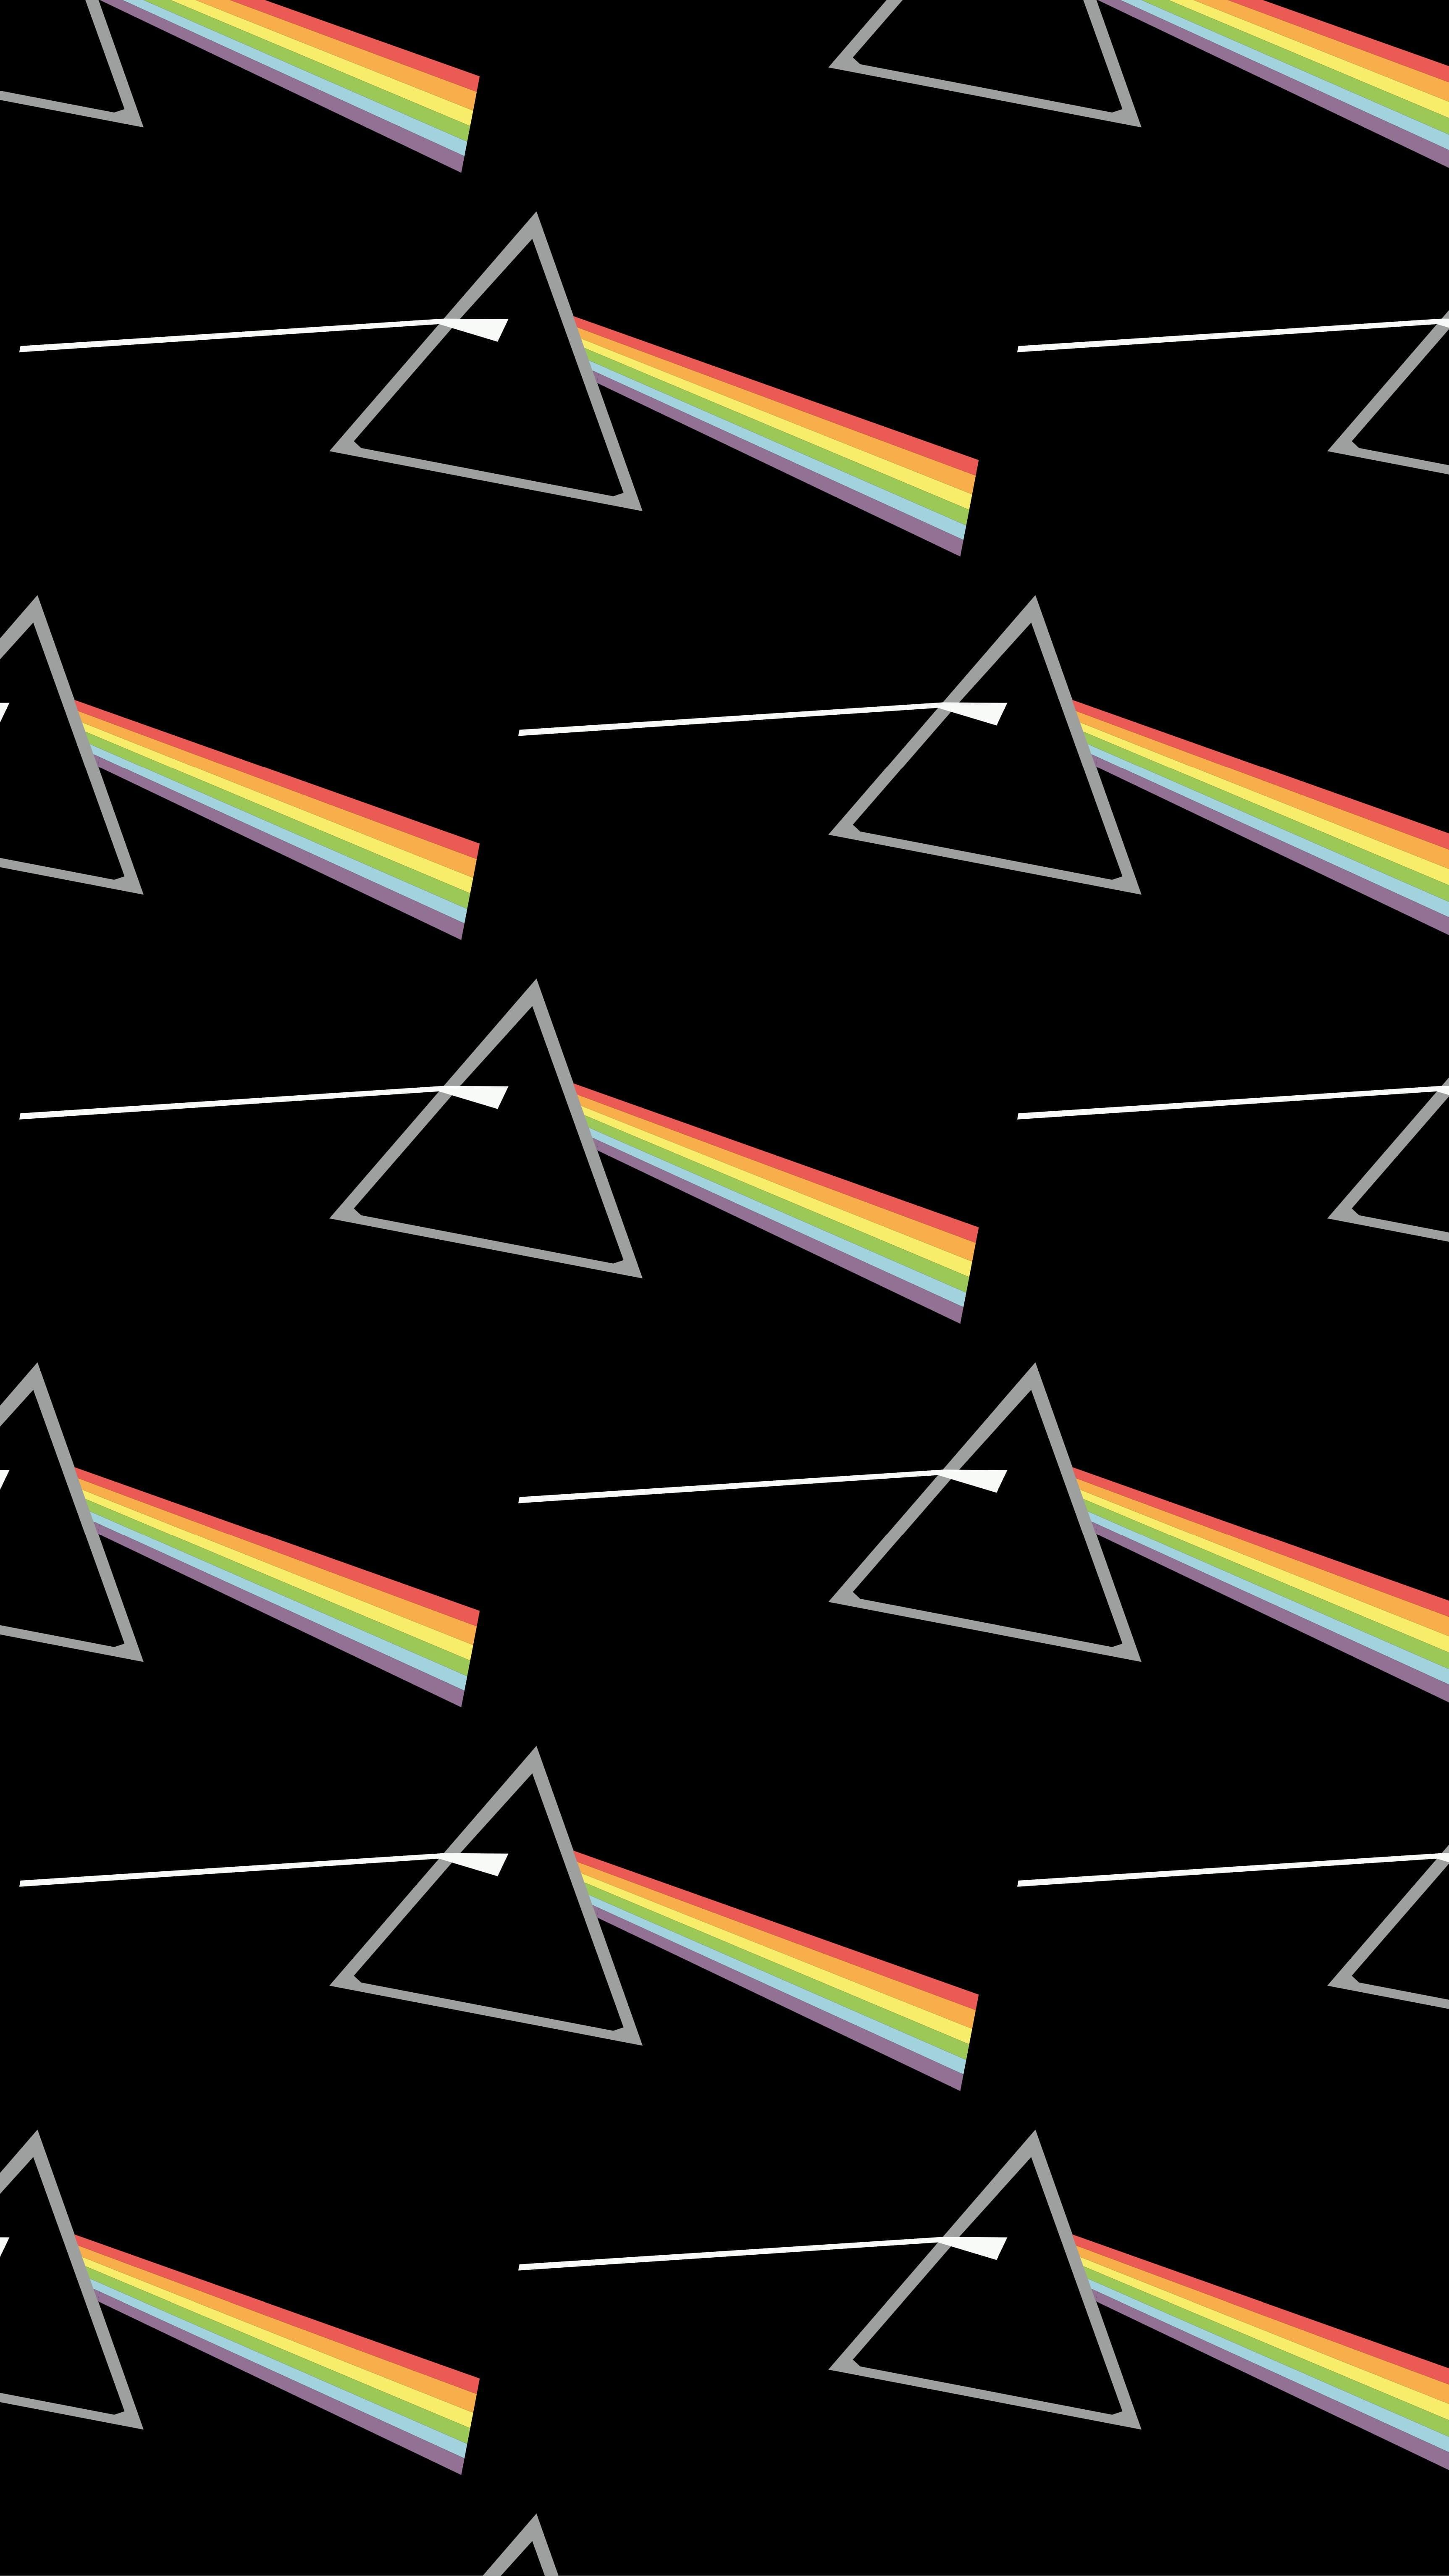 3450x6134 Heres a Pink Floyd Wallpaper for Mobile Devices #Music ...